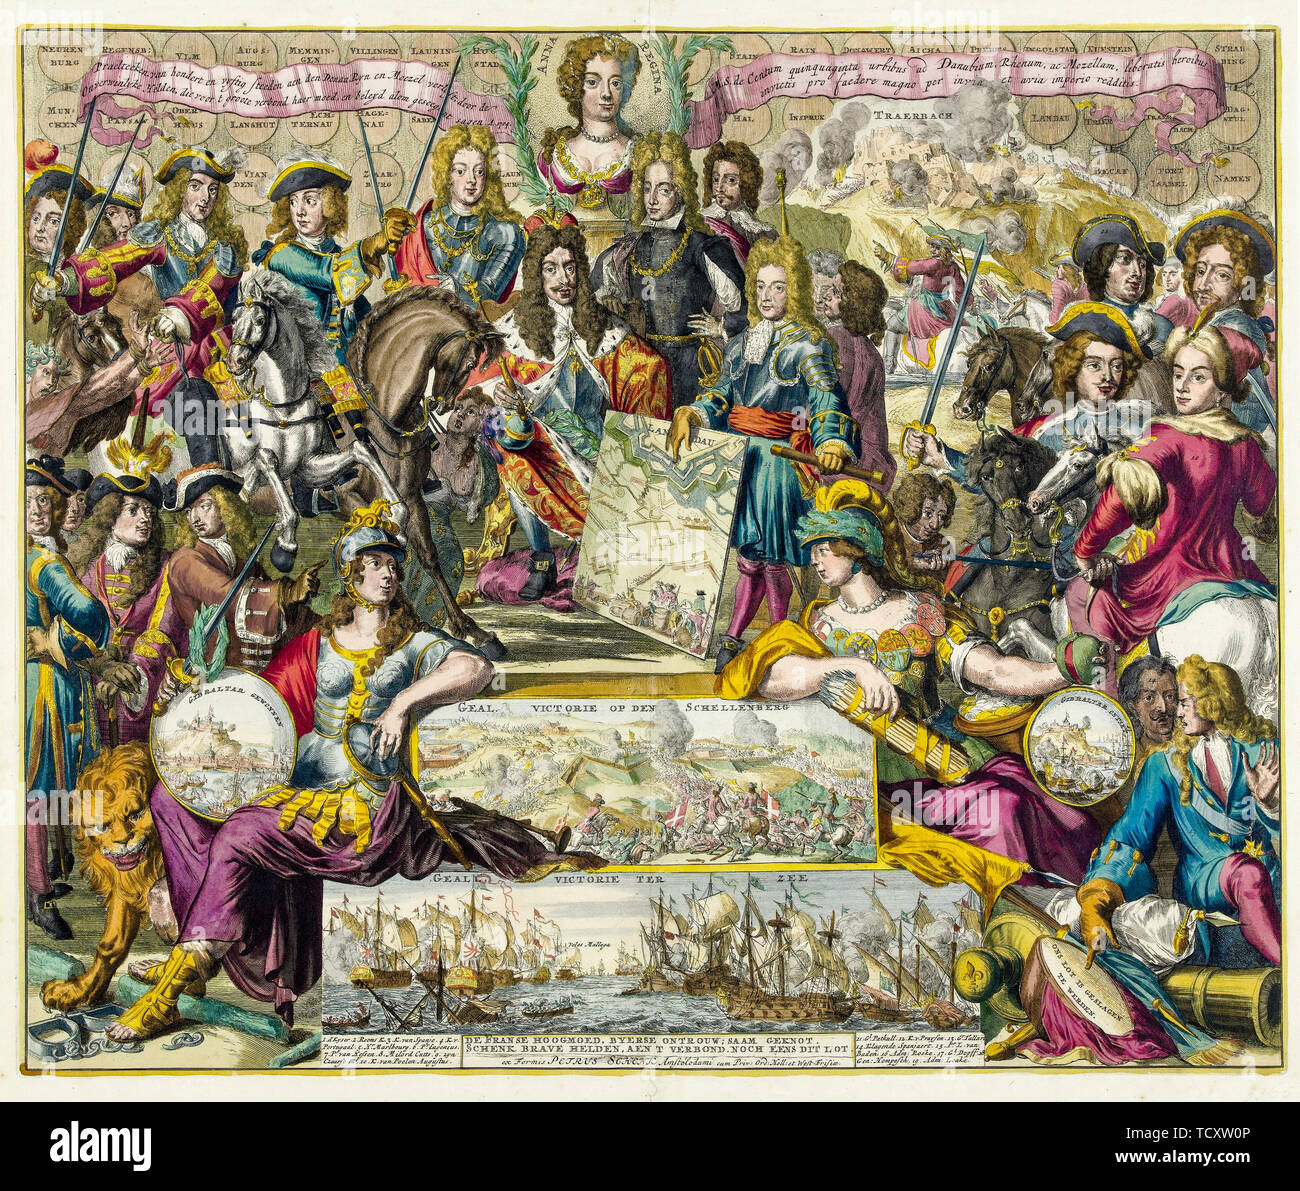 Dutch school, Allegory of the Victory of the Grand Alliance over the French in the Year 1704, Spanish Wars of Succession, engraving, circa 1704 RKM - Stock Image